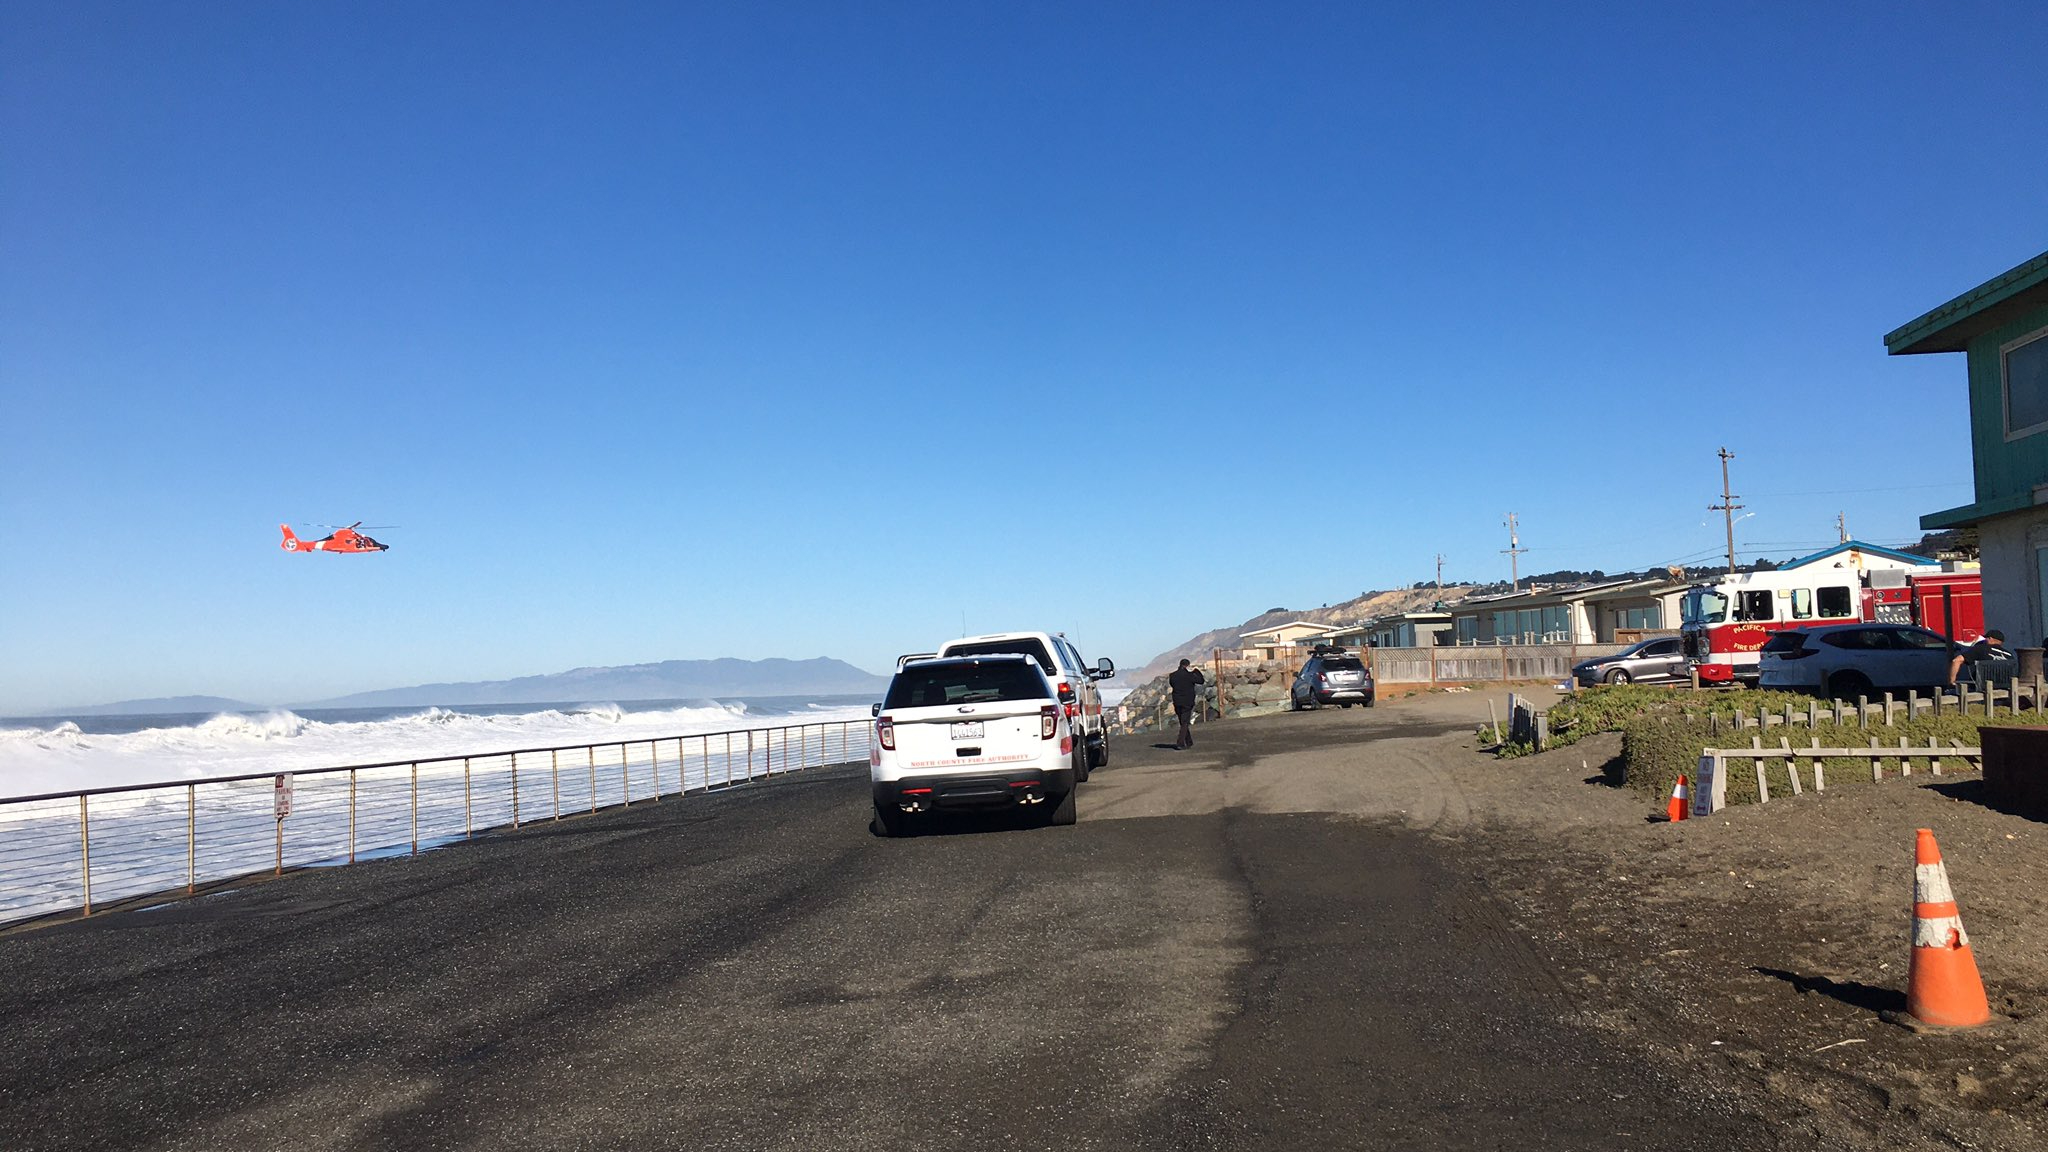 Authorities respond to assist the U.S. Coast Guard with a water rescue in Pacifica on Dec. 8, 2020, in a photo tweeted by the North County Fire Authority.